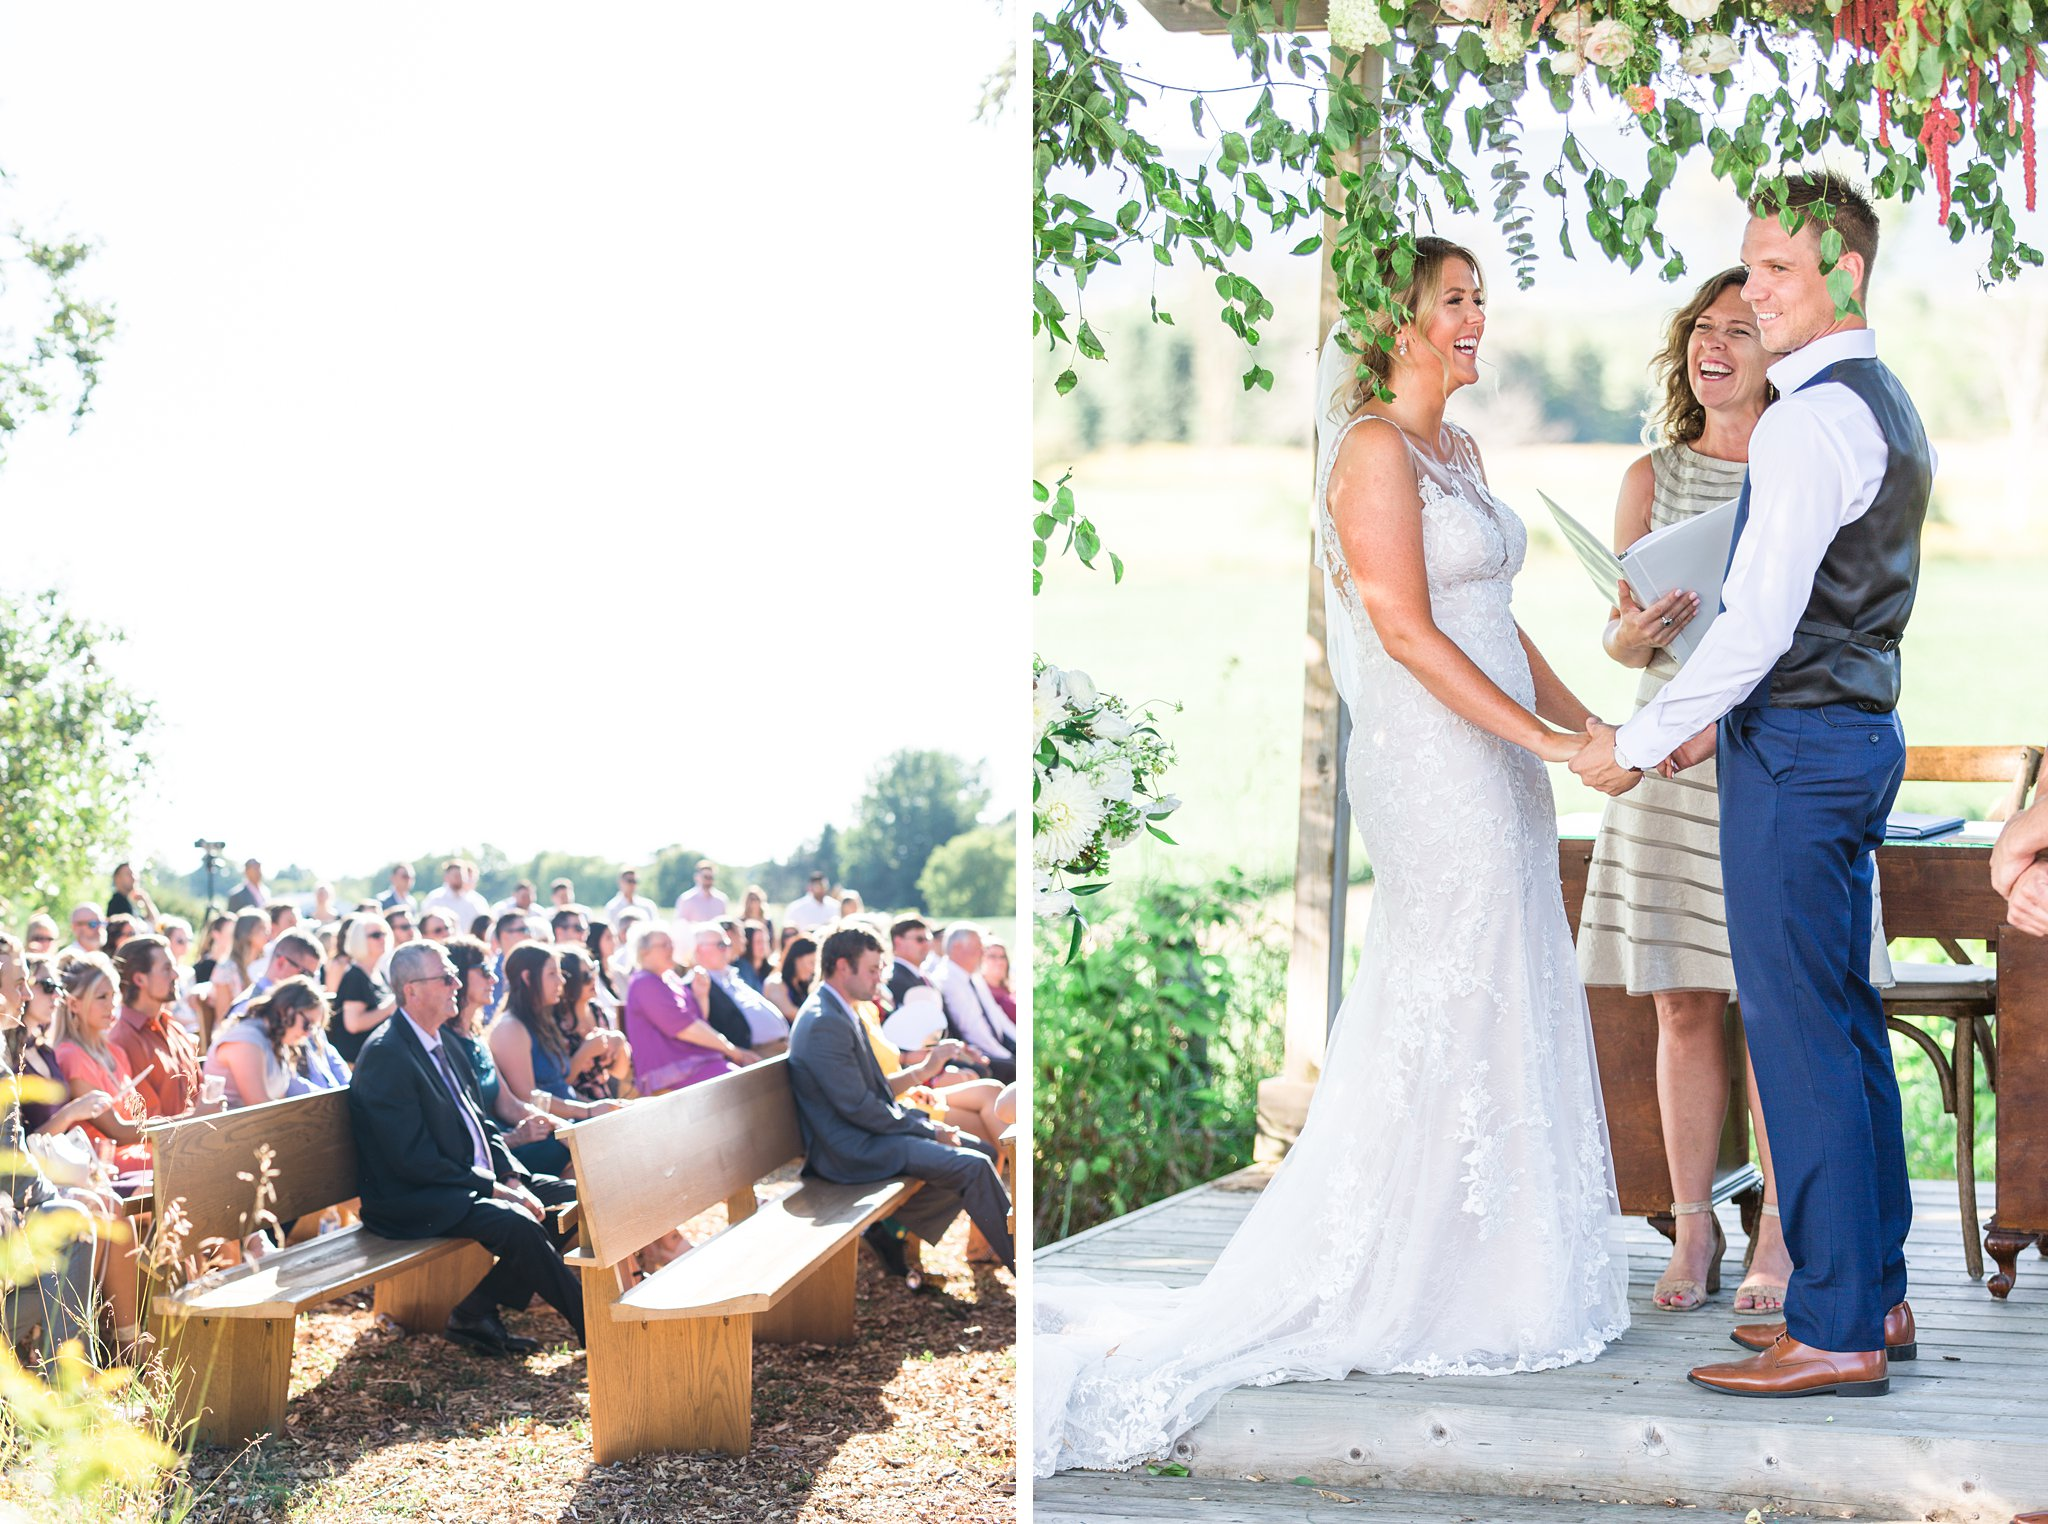 Guests sit outside on church pews, Private Estate Wedding Photos, Amy Pinder Photography